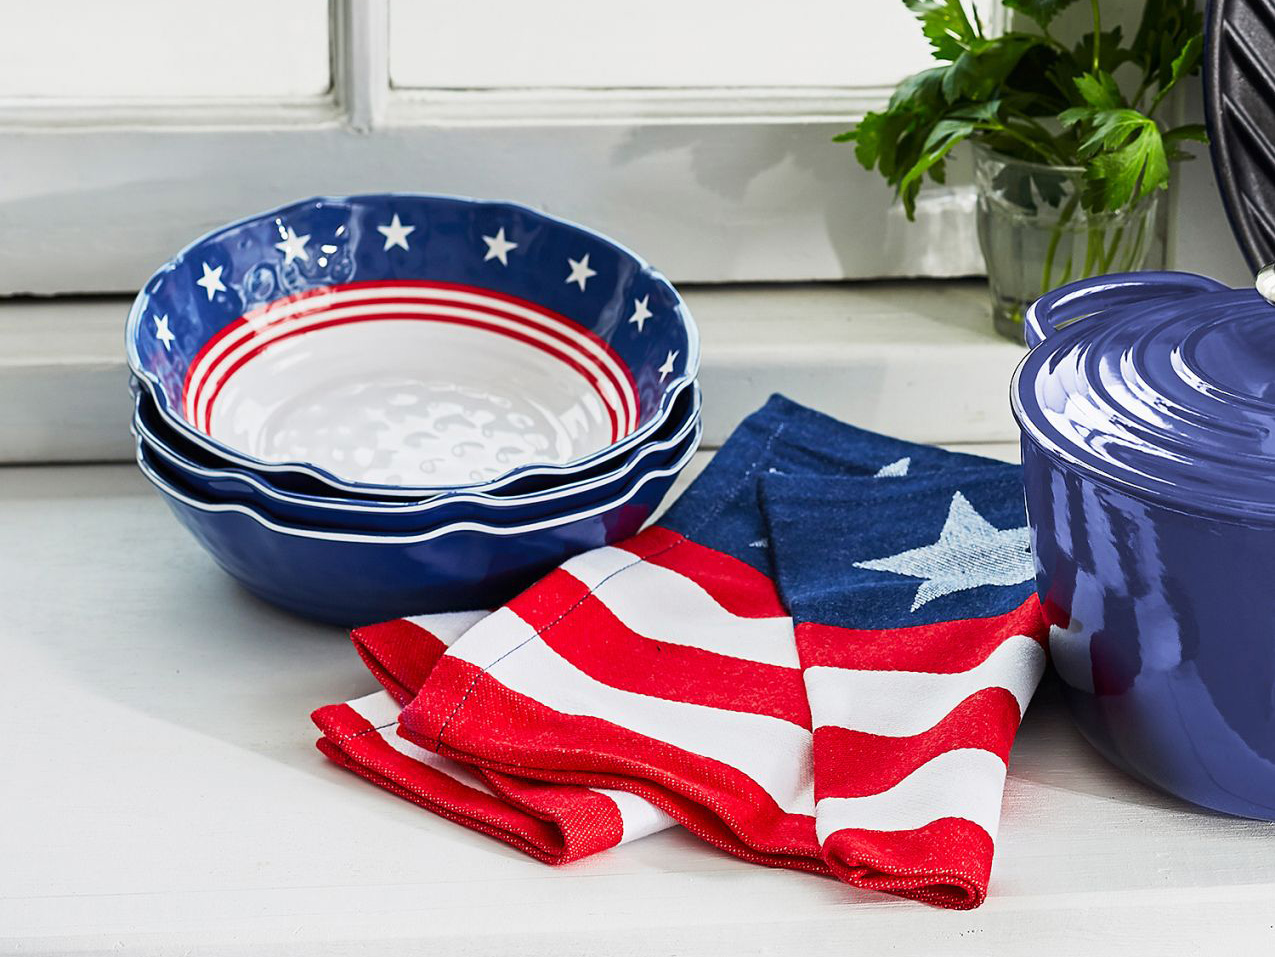 Stars & Stripes Melamine Cereal Bowl